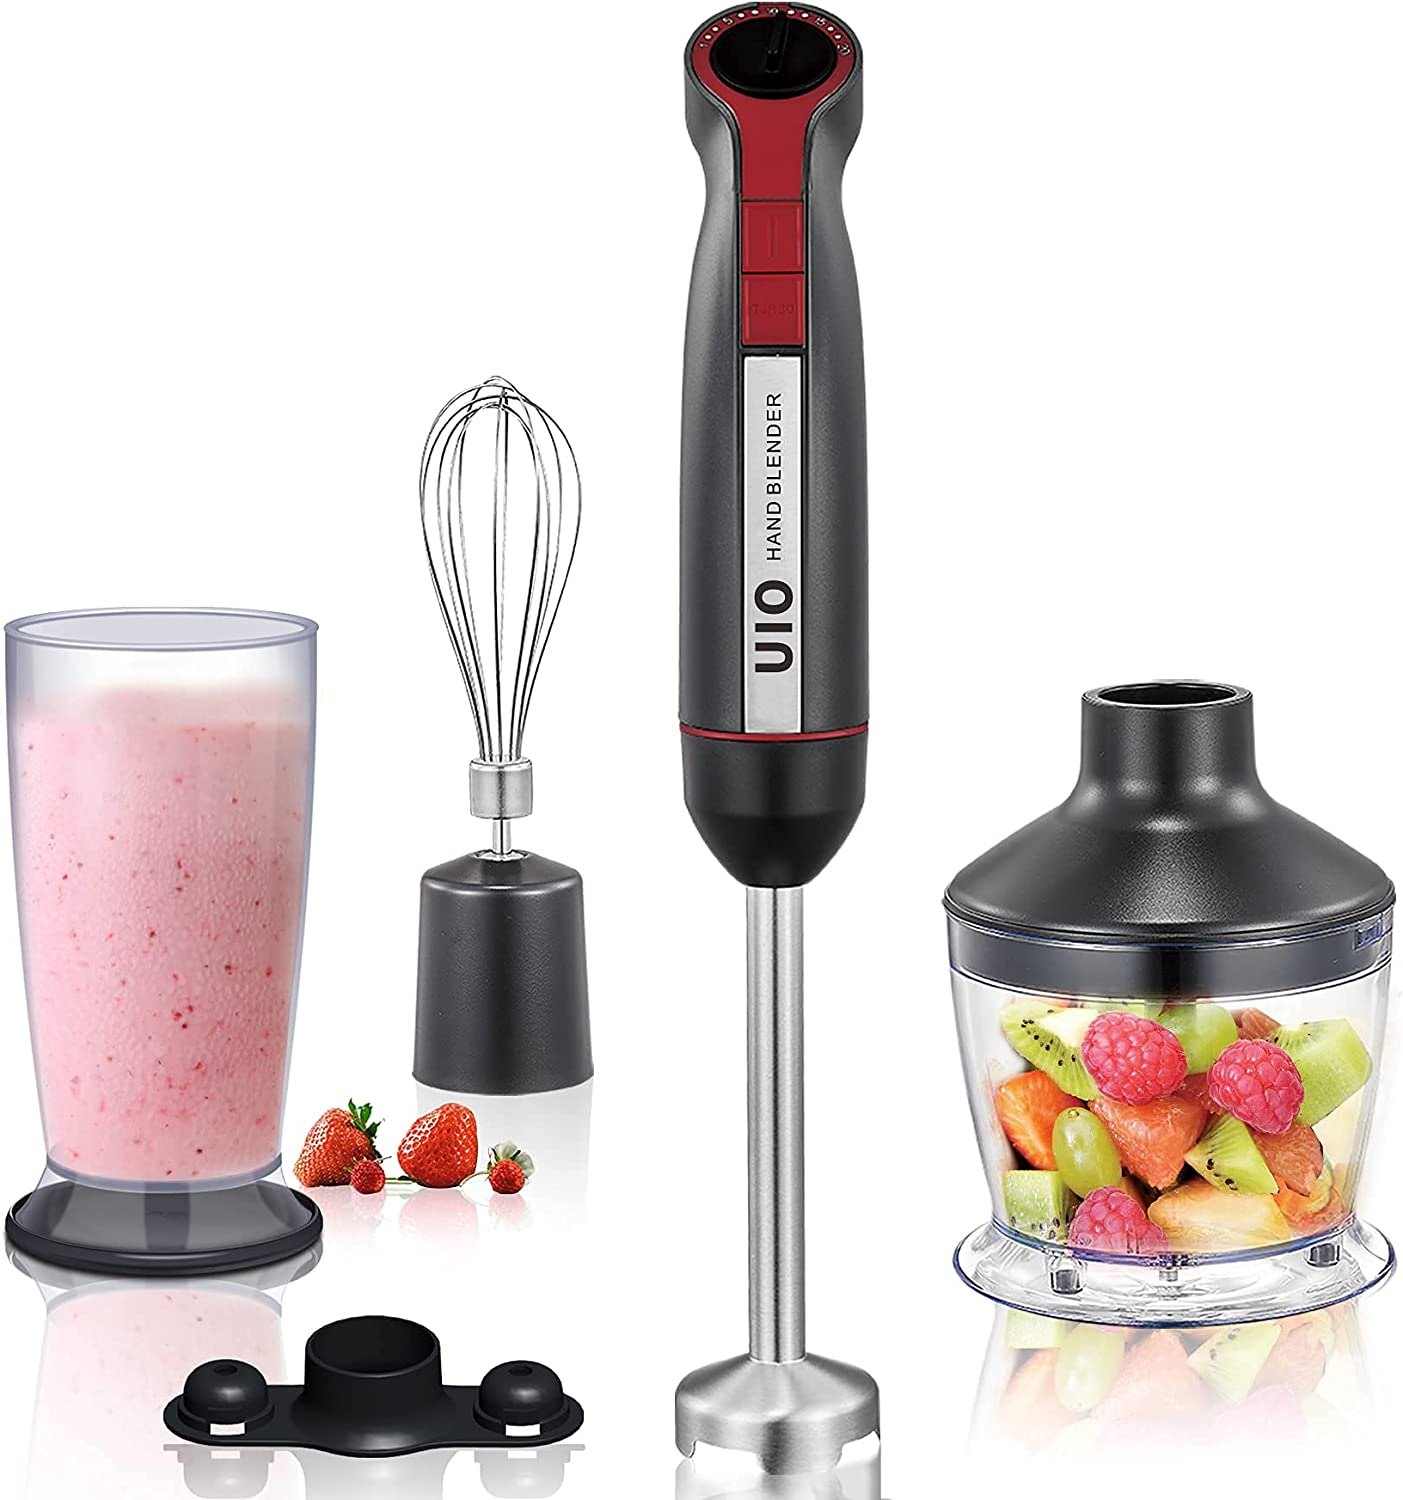 Hand Blender UIO 400W 4 in 1 Immersion Blender Handheld, 20 Speed and Turbo Mode Stick Blender, 304 Stainless Steel Handheld Blender for Baby Food/Soup/Juice, with Whisk, 800ml Cup, 500ml Chopper Bowl